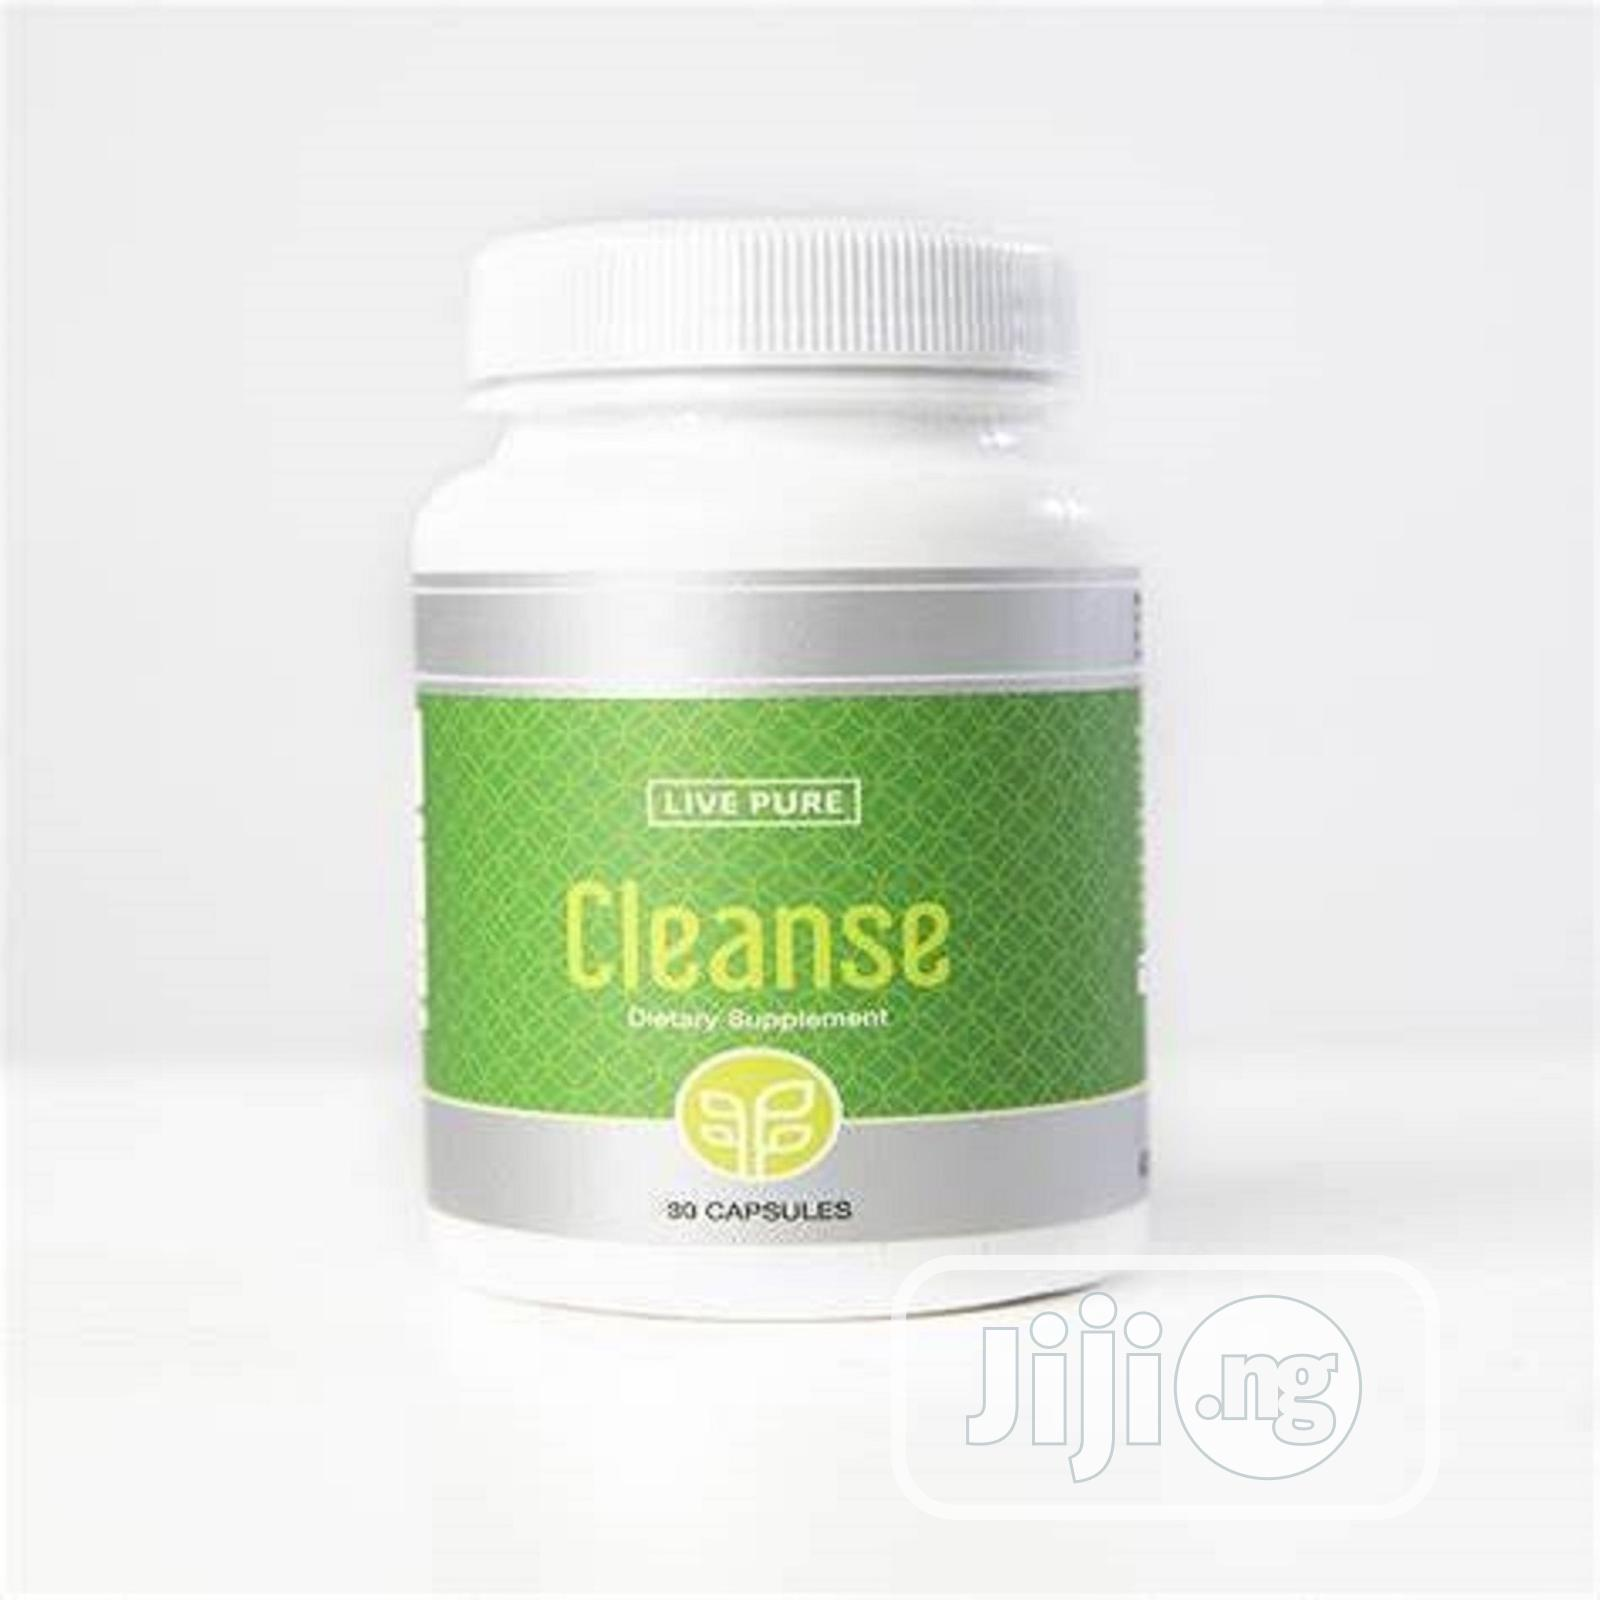 Cleanse - Full Body Detox. Get Rid of Everything Unwanted.